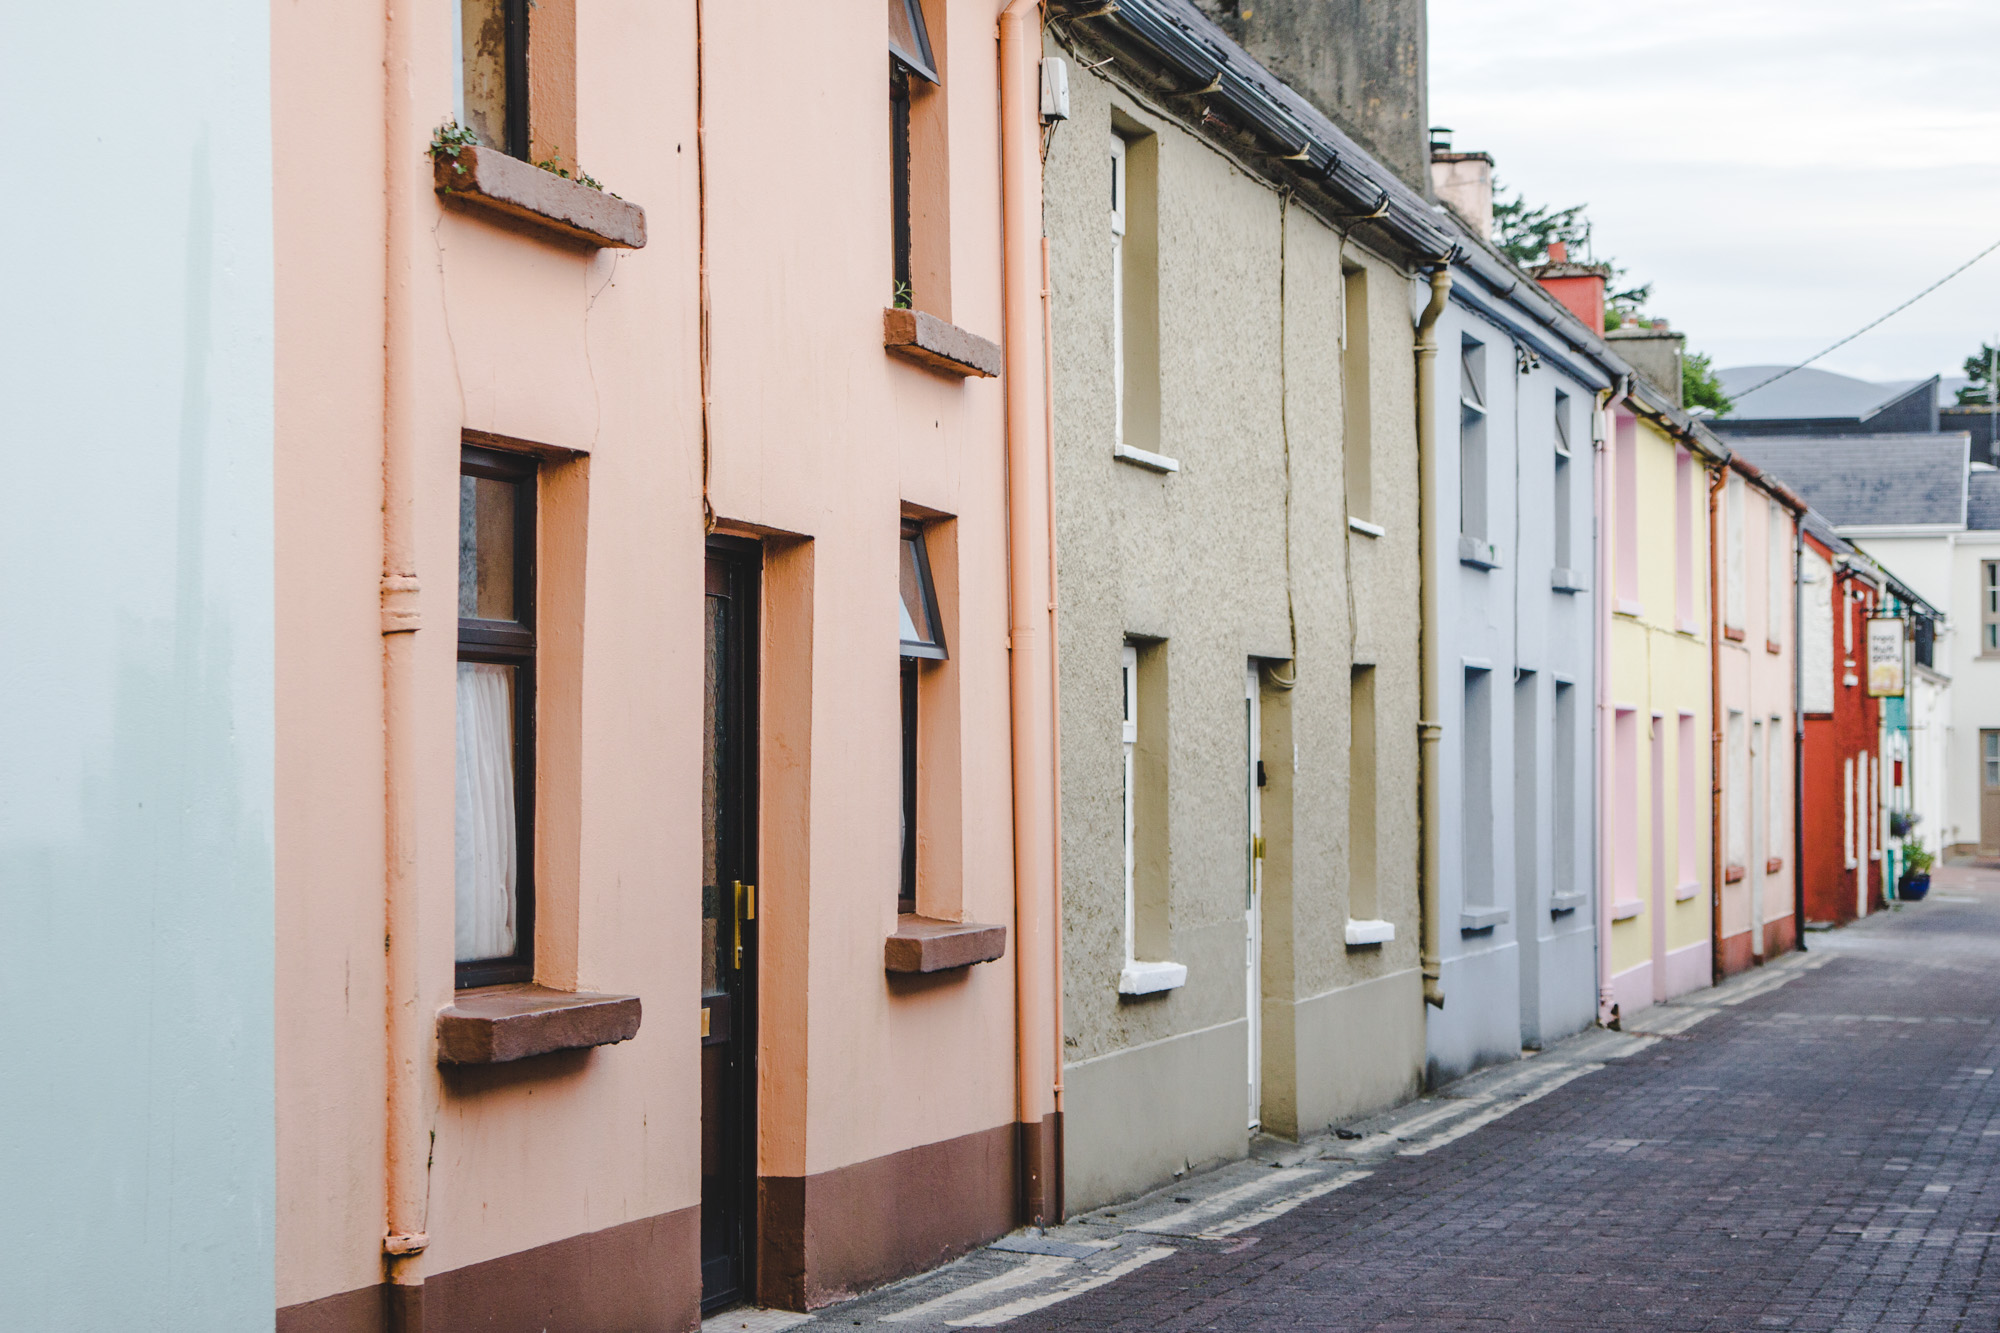 Colorful Houses in Killarney in Ireland